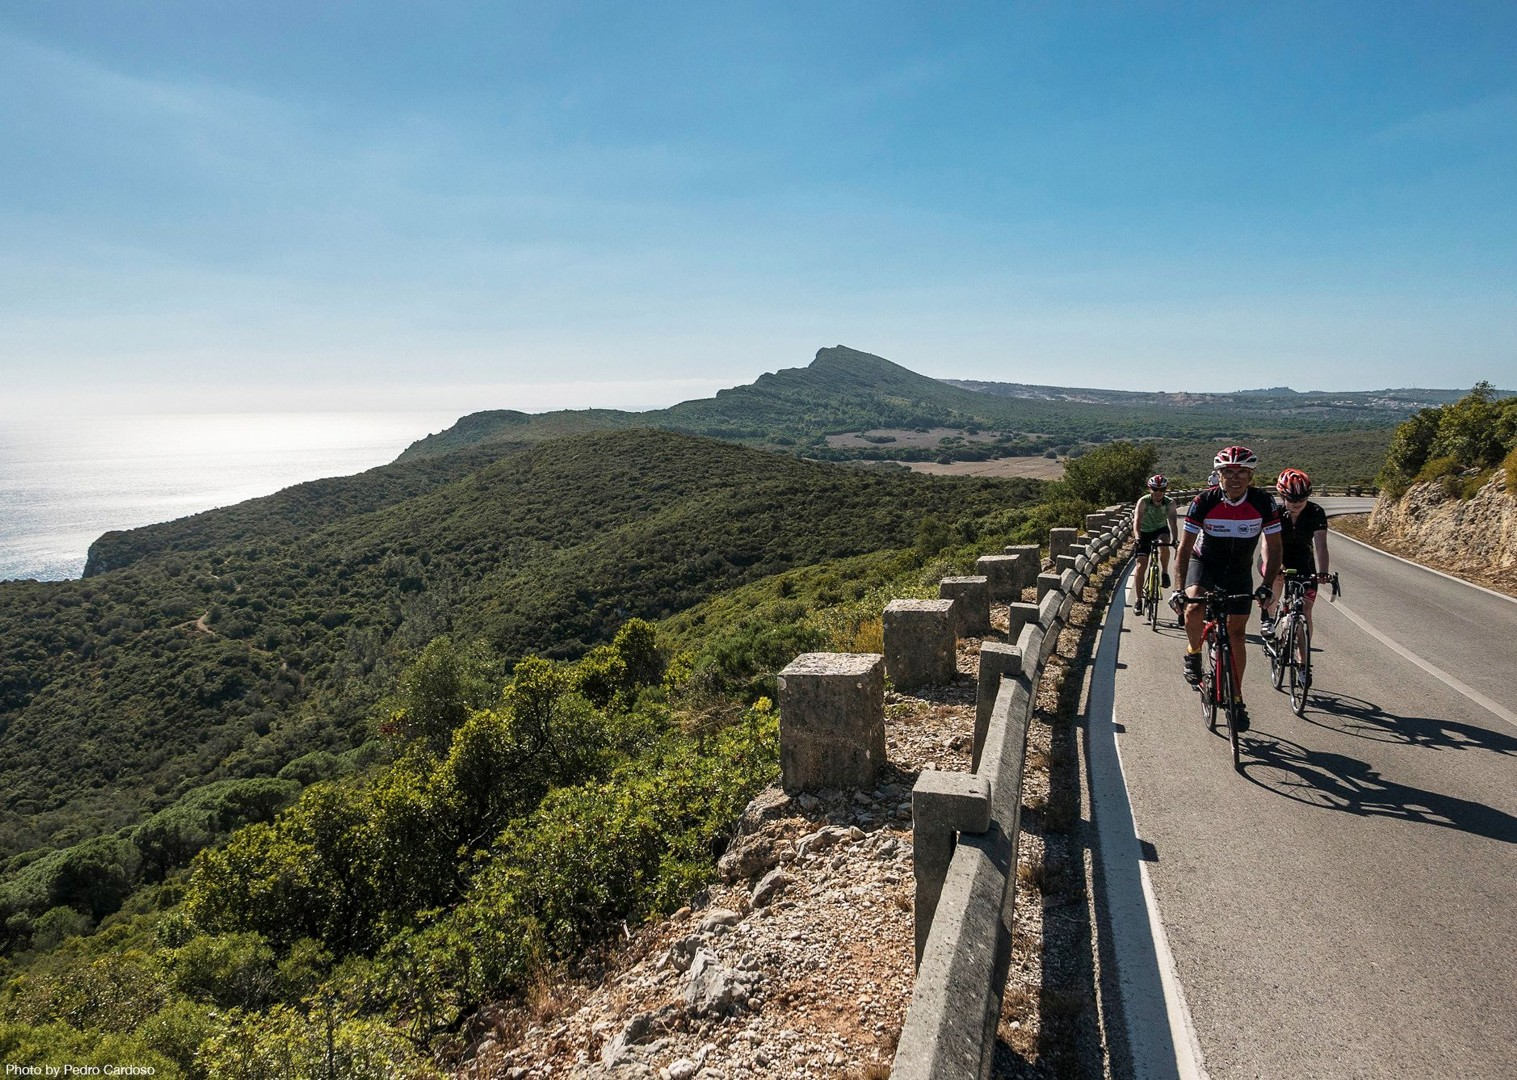 road-cycling-guides-portugal.jpg - Portugal - Atlantic Escape - Guided Road Cycling Holiday - Road Cycling